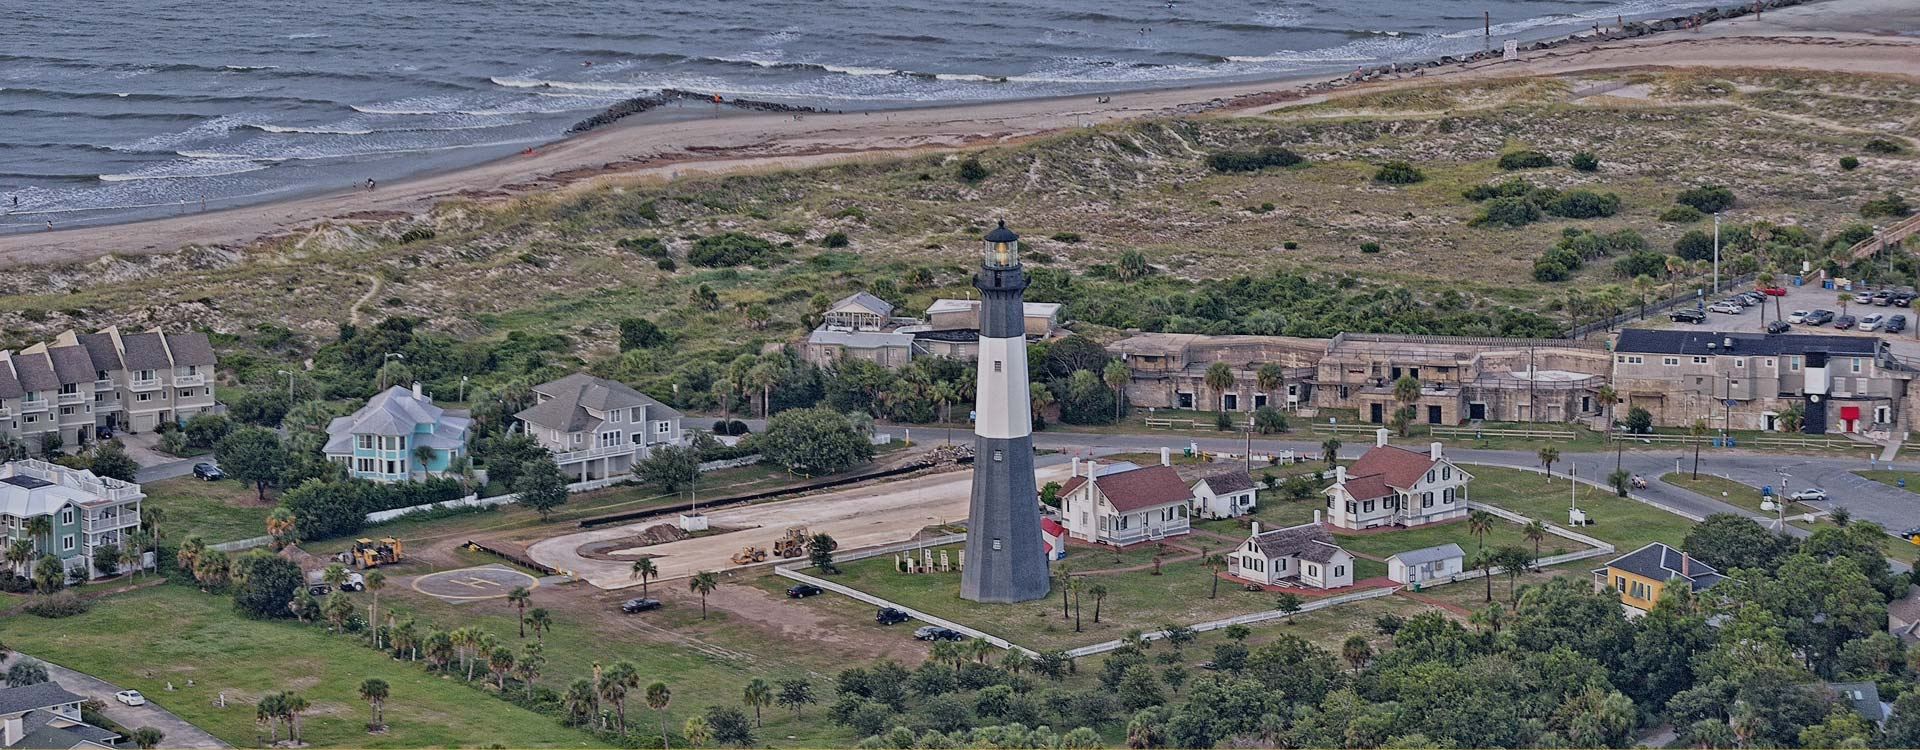 Aerial view of Tybee Island provided by Southeast Helicopter